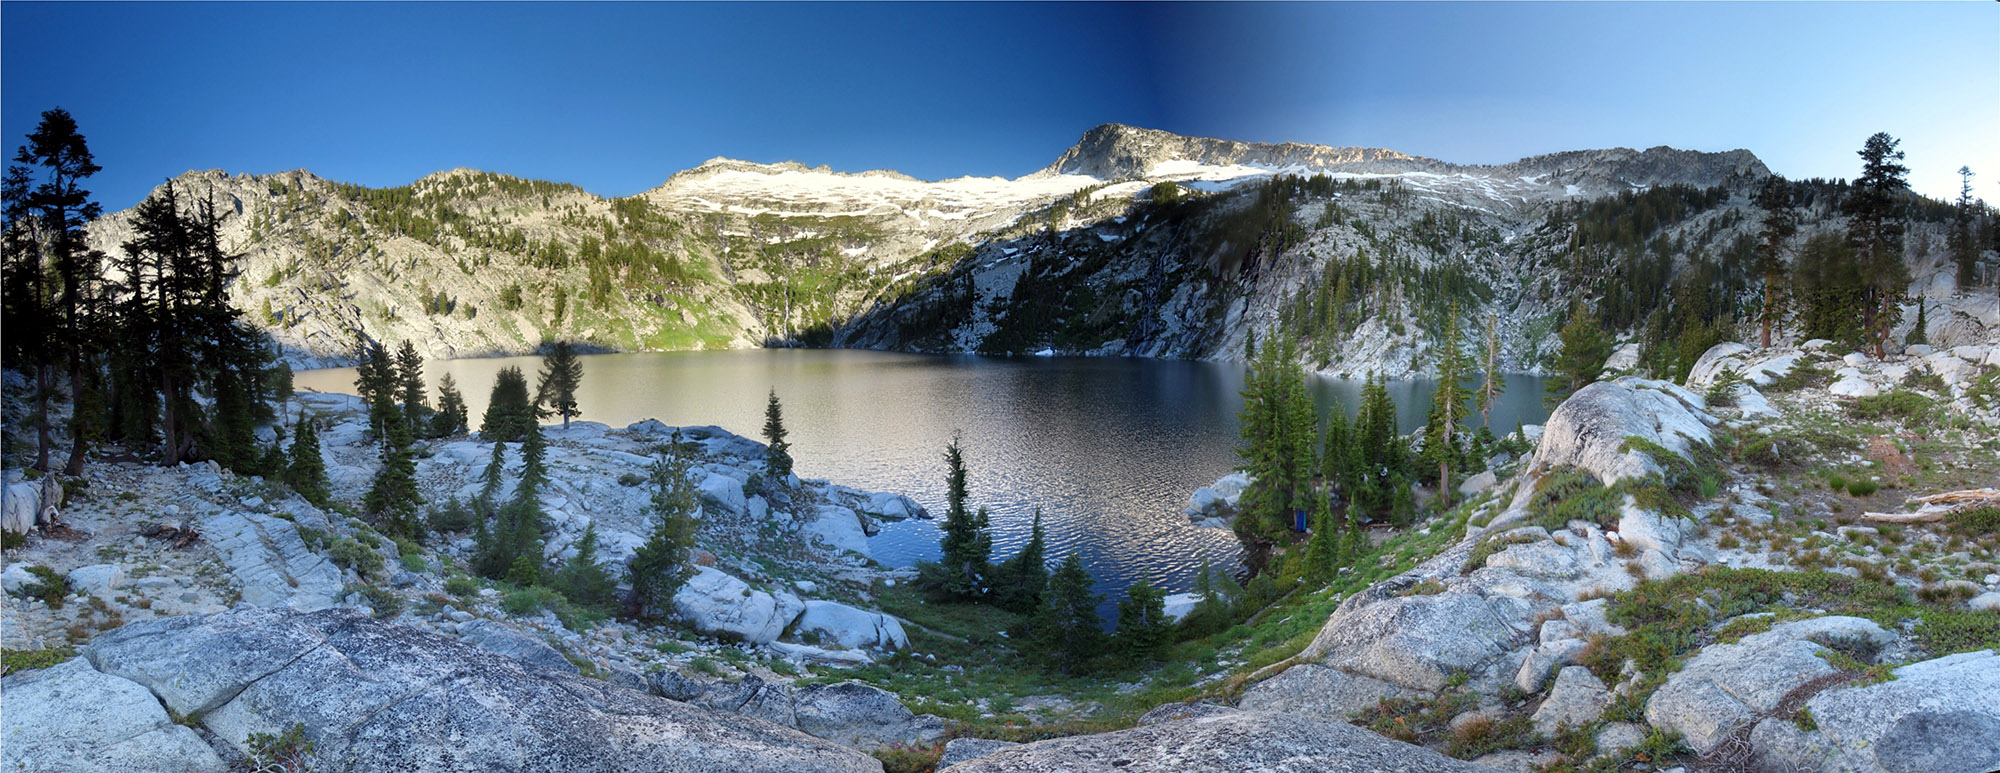 Wilderness lake with rocky sparsely forested hills all around it